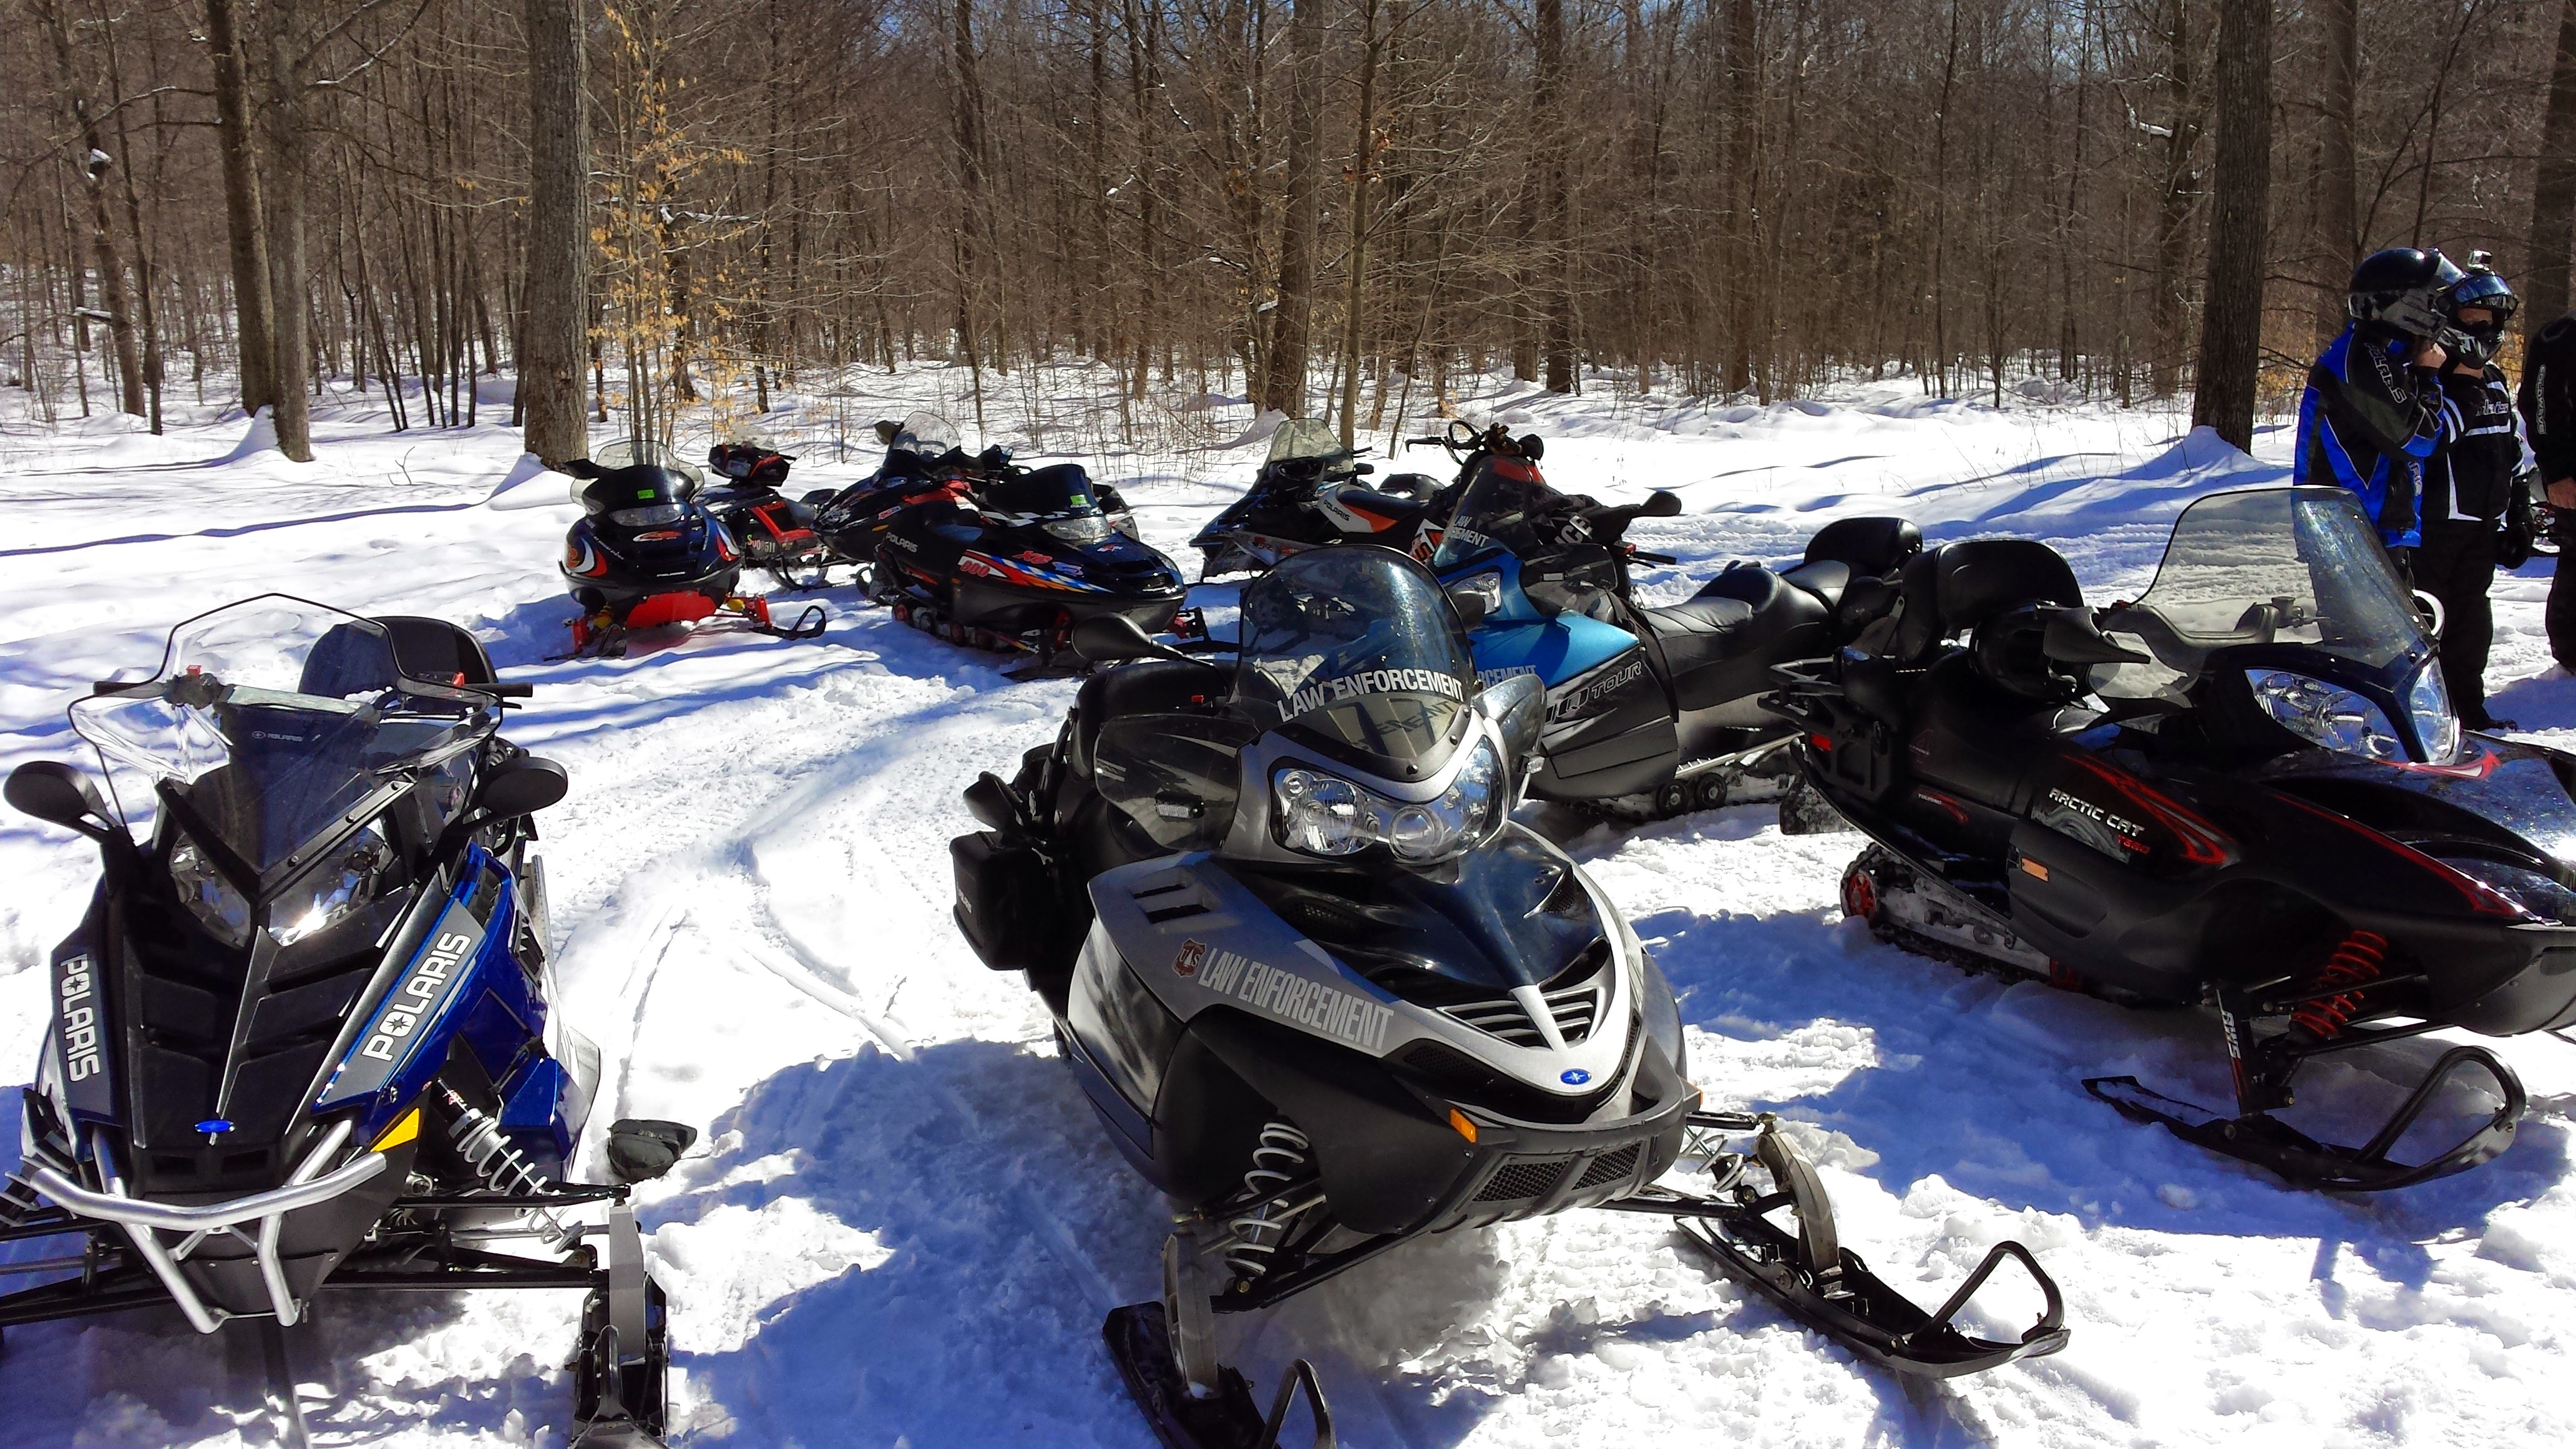 Winter: Snowmobiles